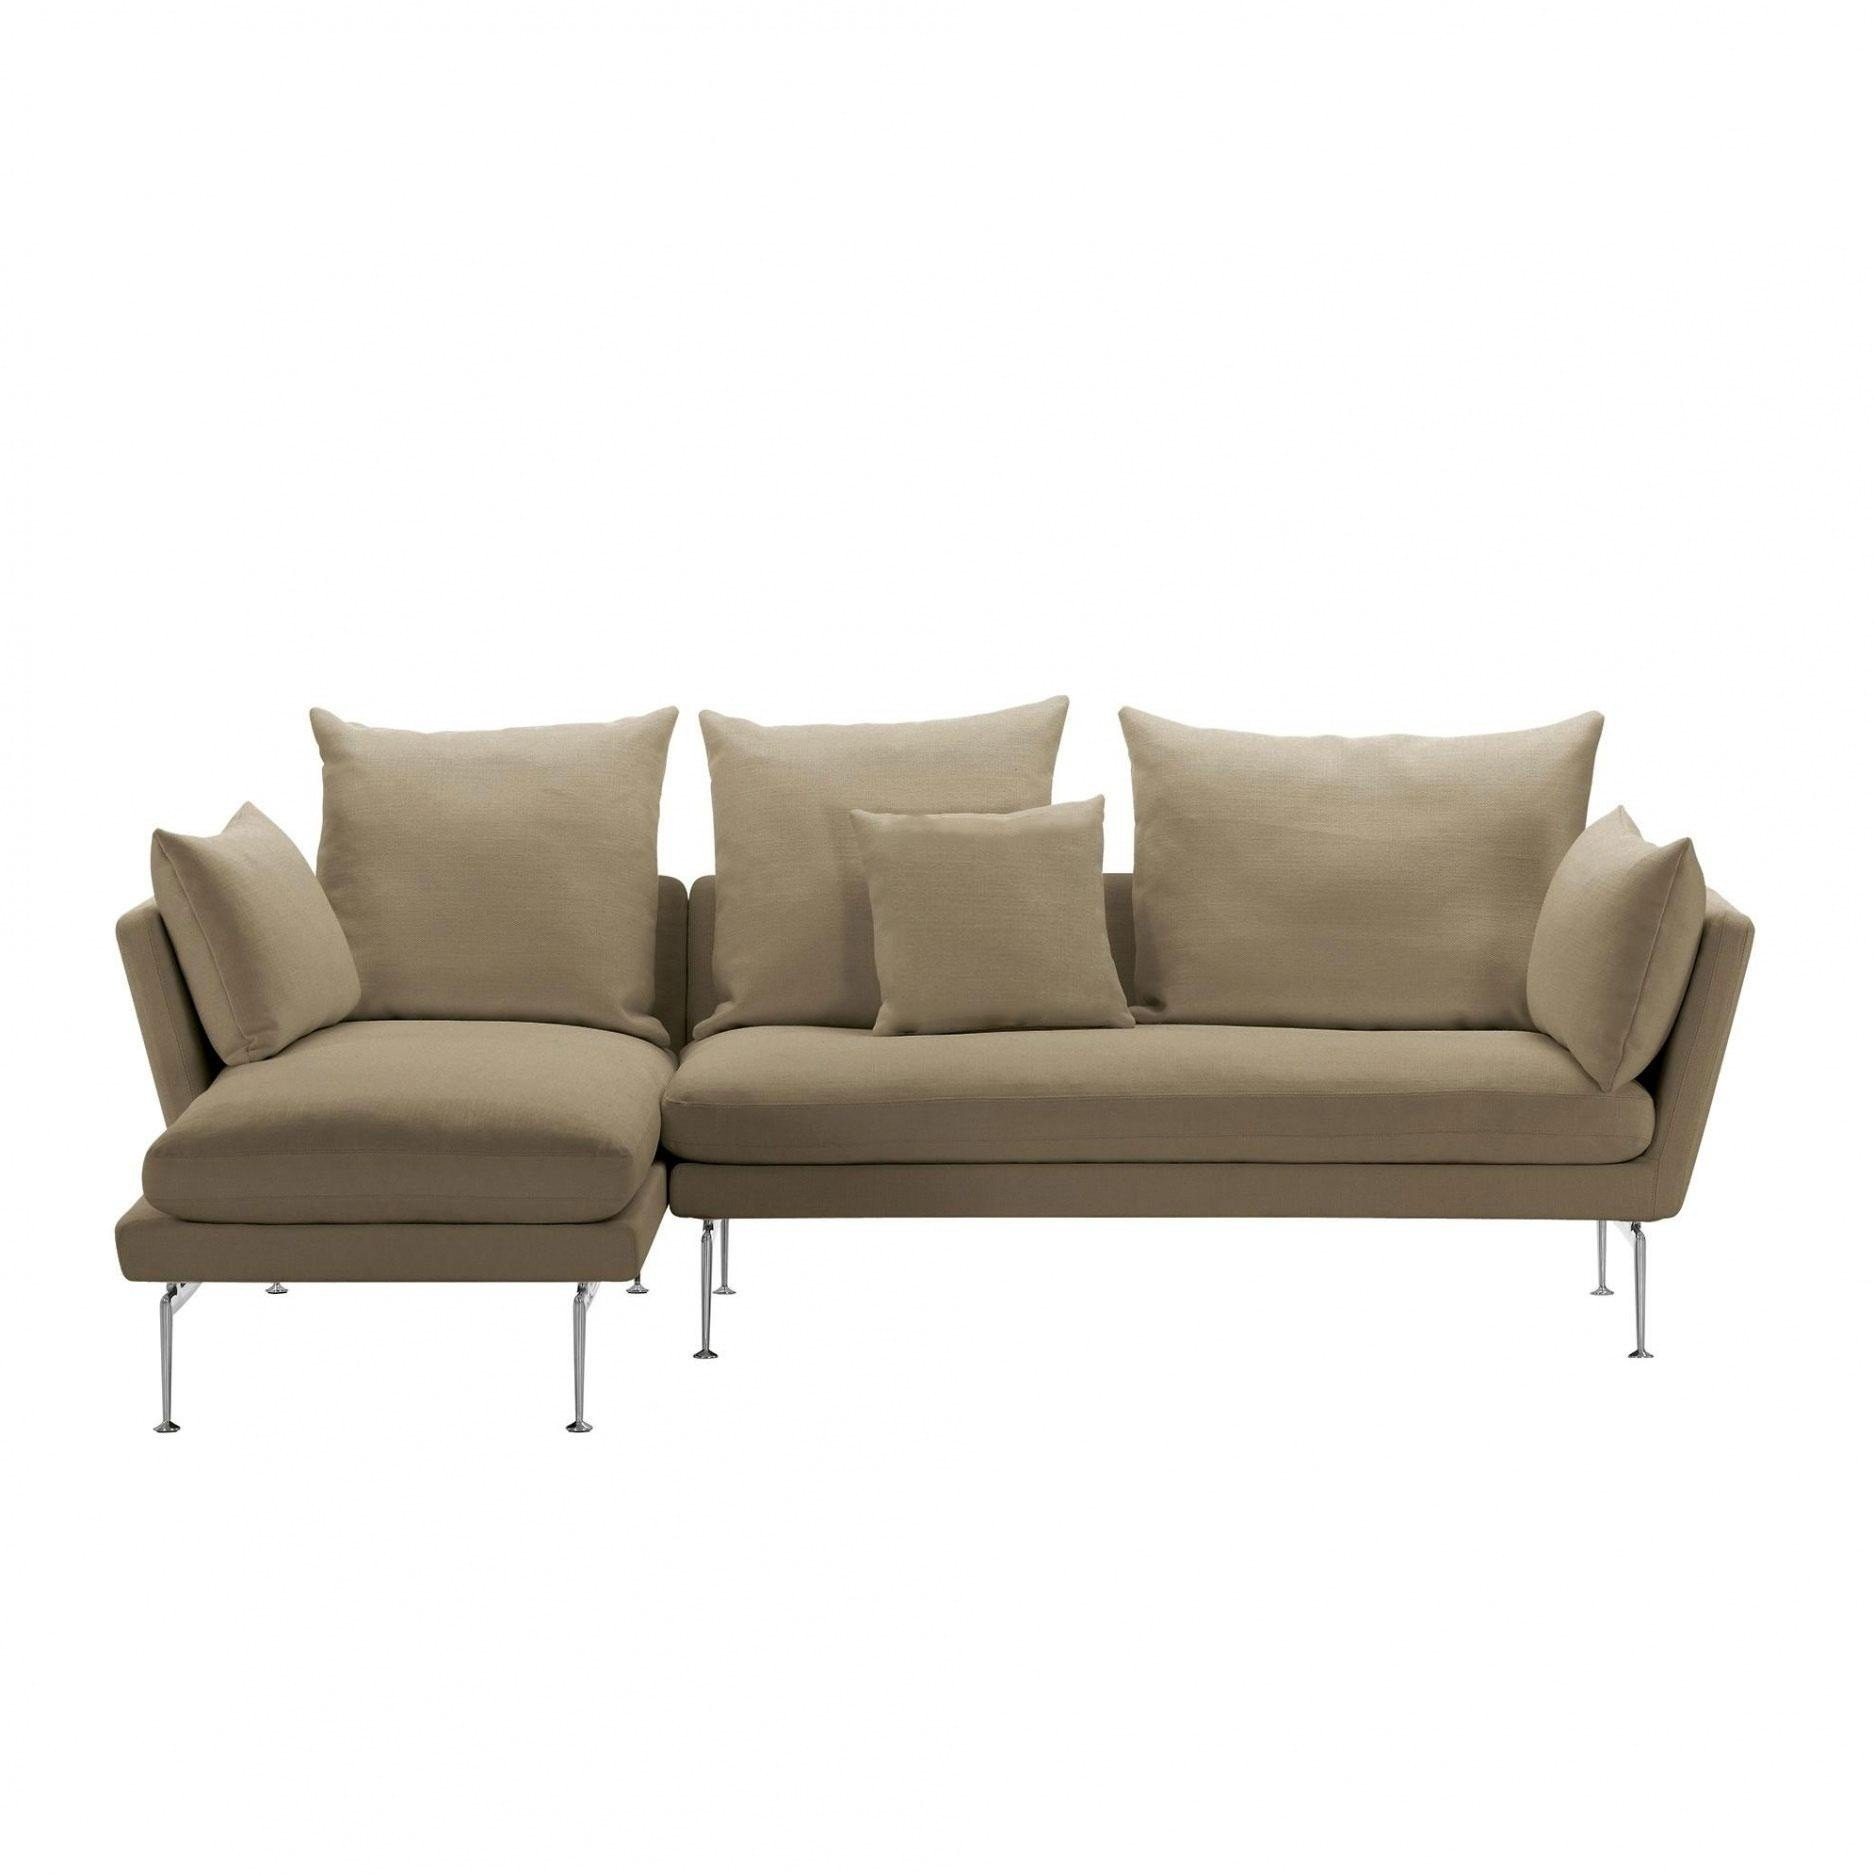 p color choices chaise several wide slipcovered sectional htm with sofa lounge options beach slipcover fabric juno